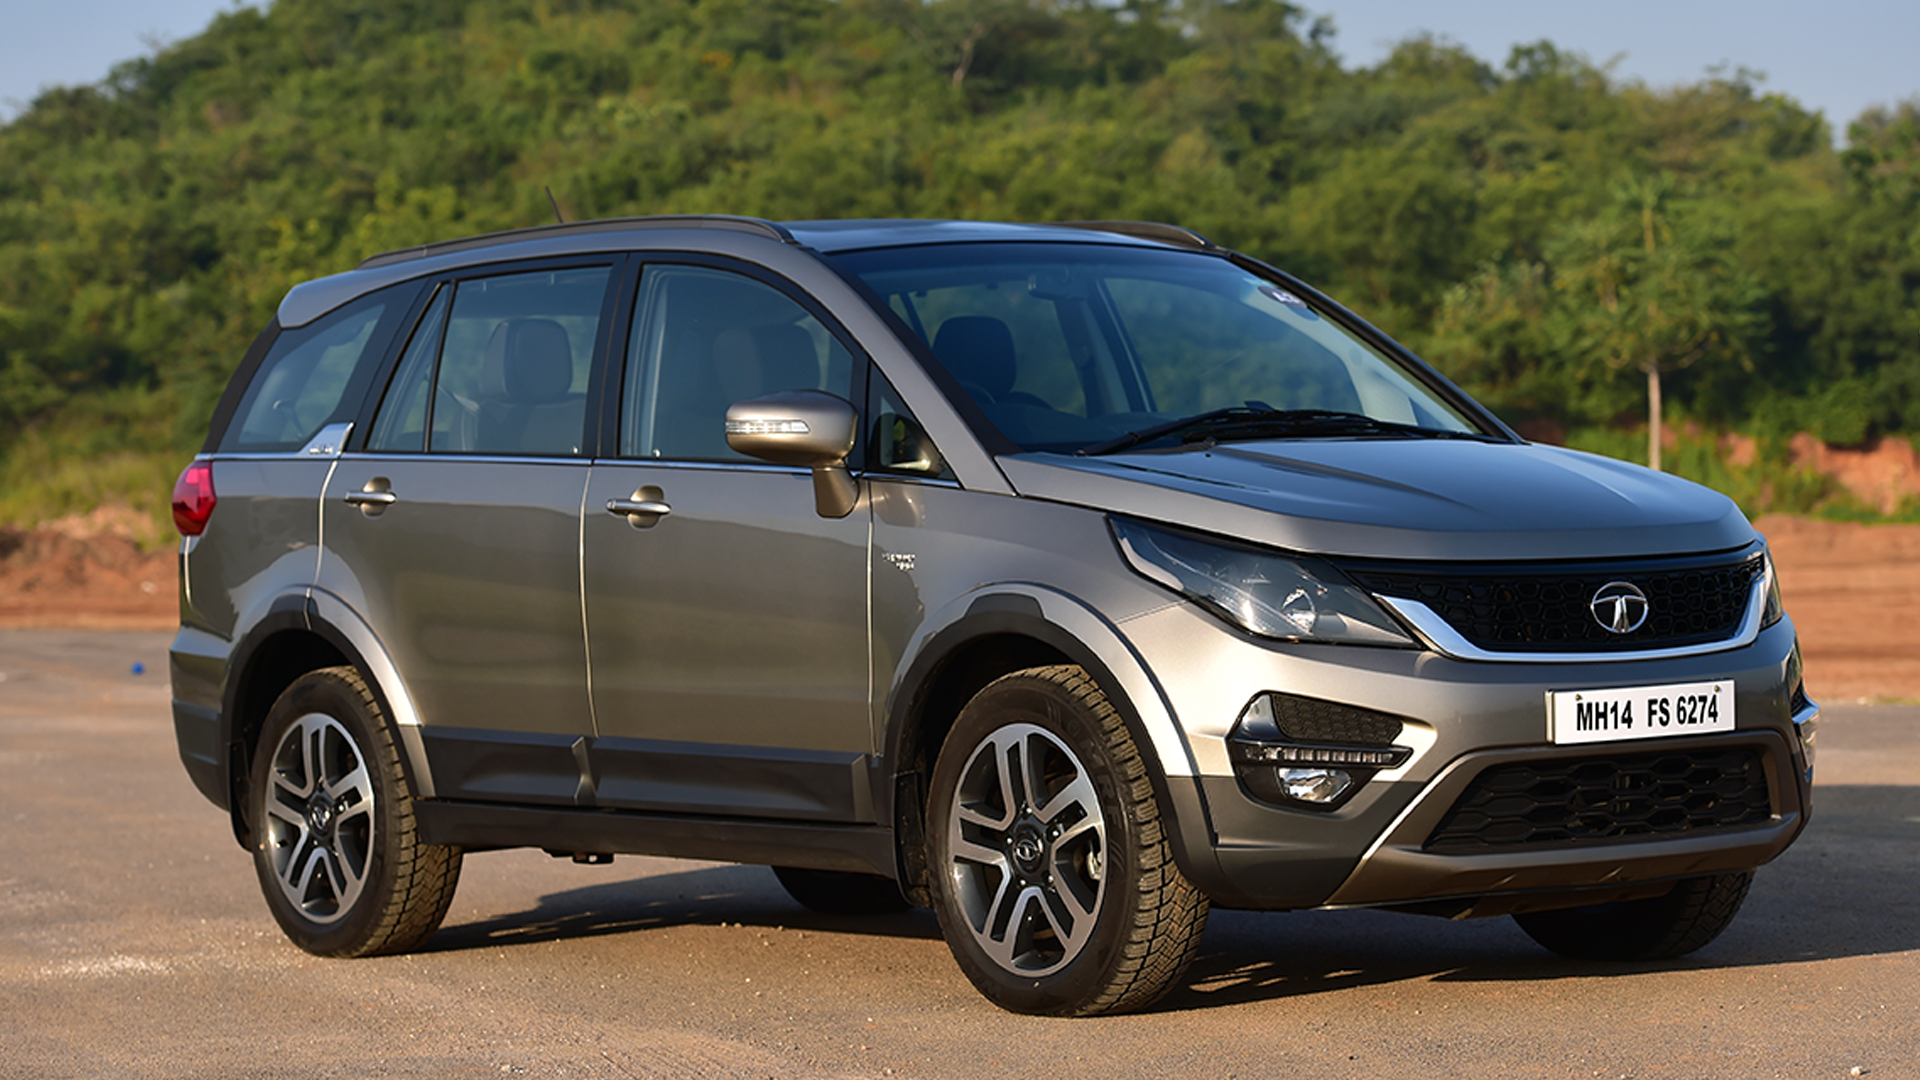 Tata Hexa 2017 Price Mileage Reviews Specification Gallery